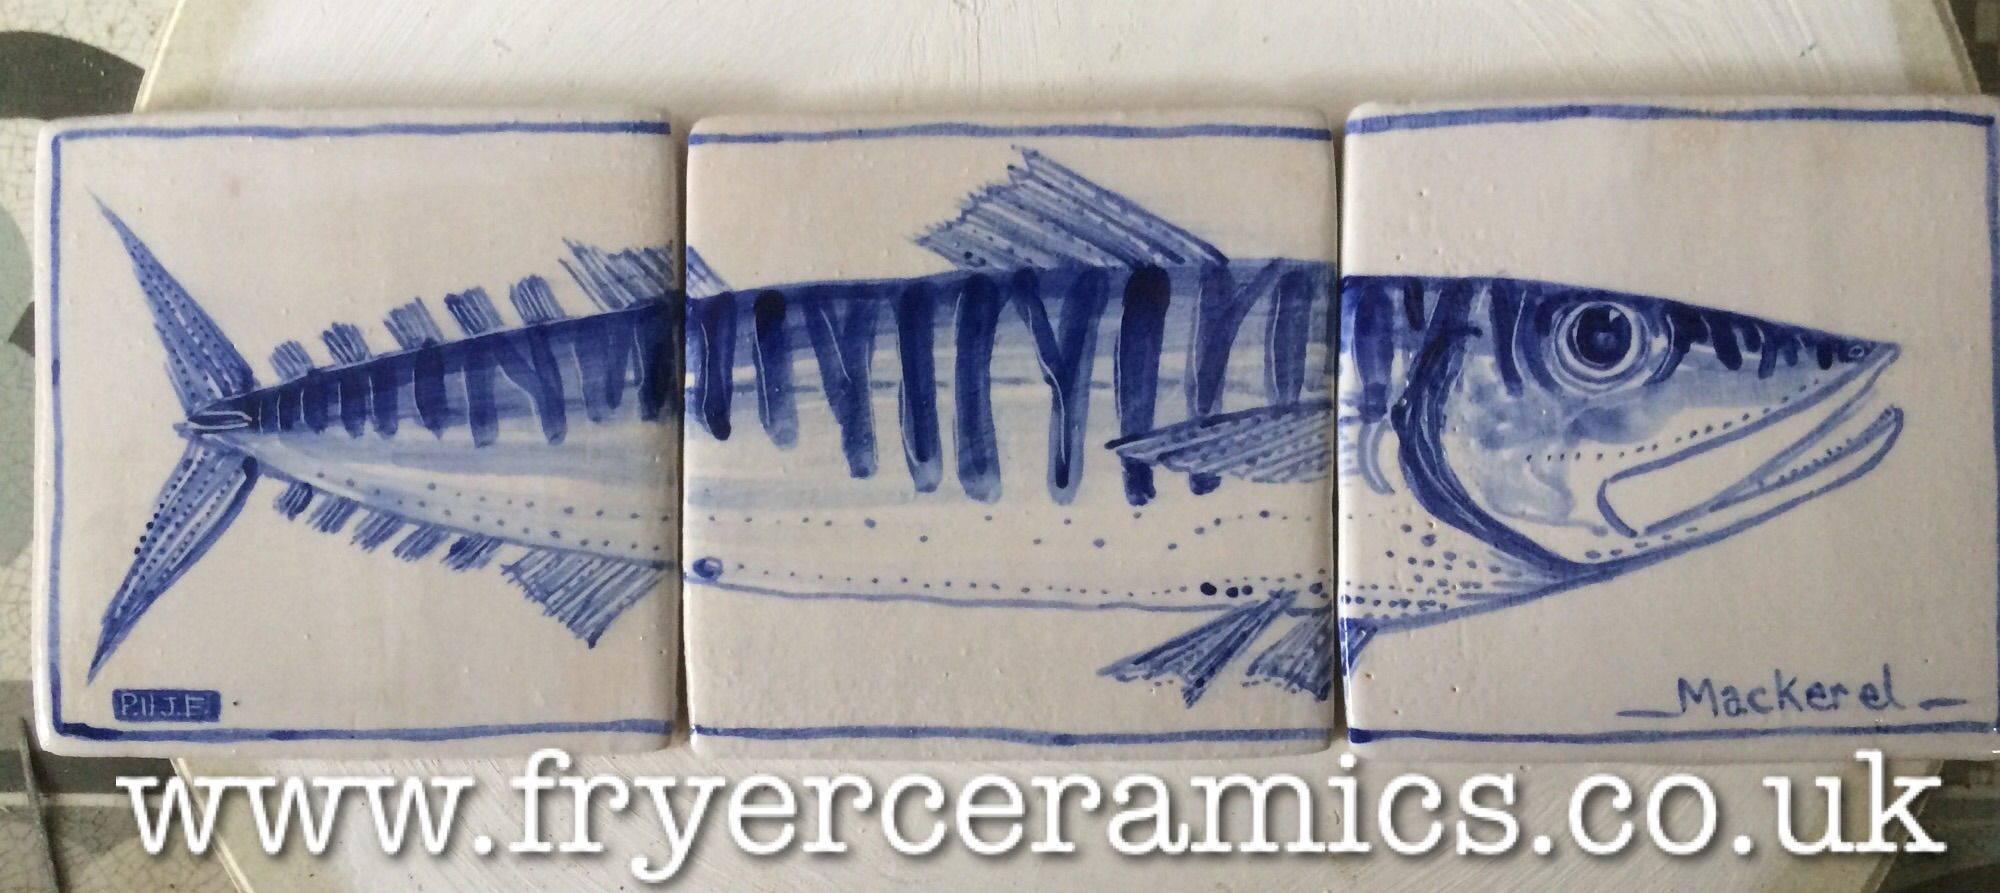 Küche Fliesen Delft Delft Inspired Kitchen Tiles For Fish Lovers Blue And White